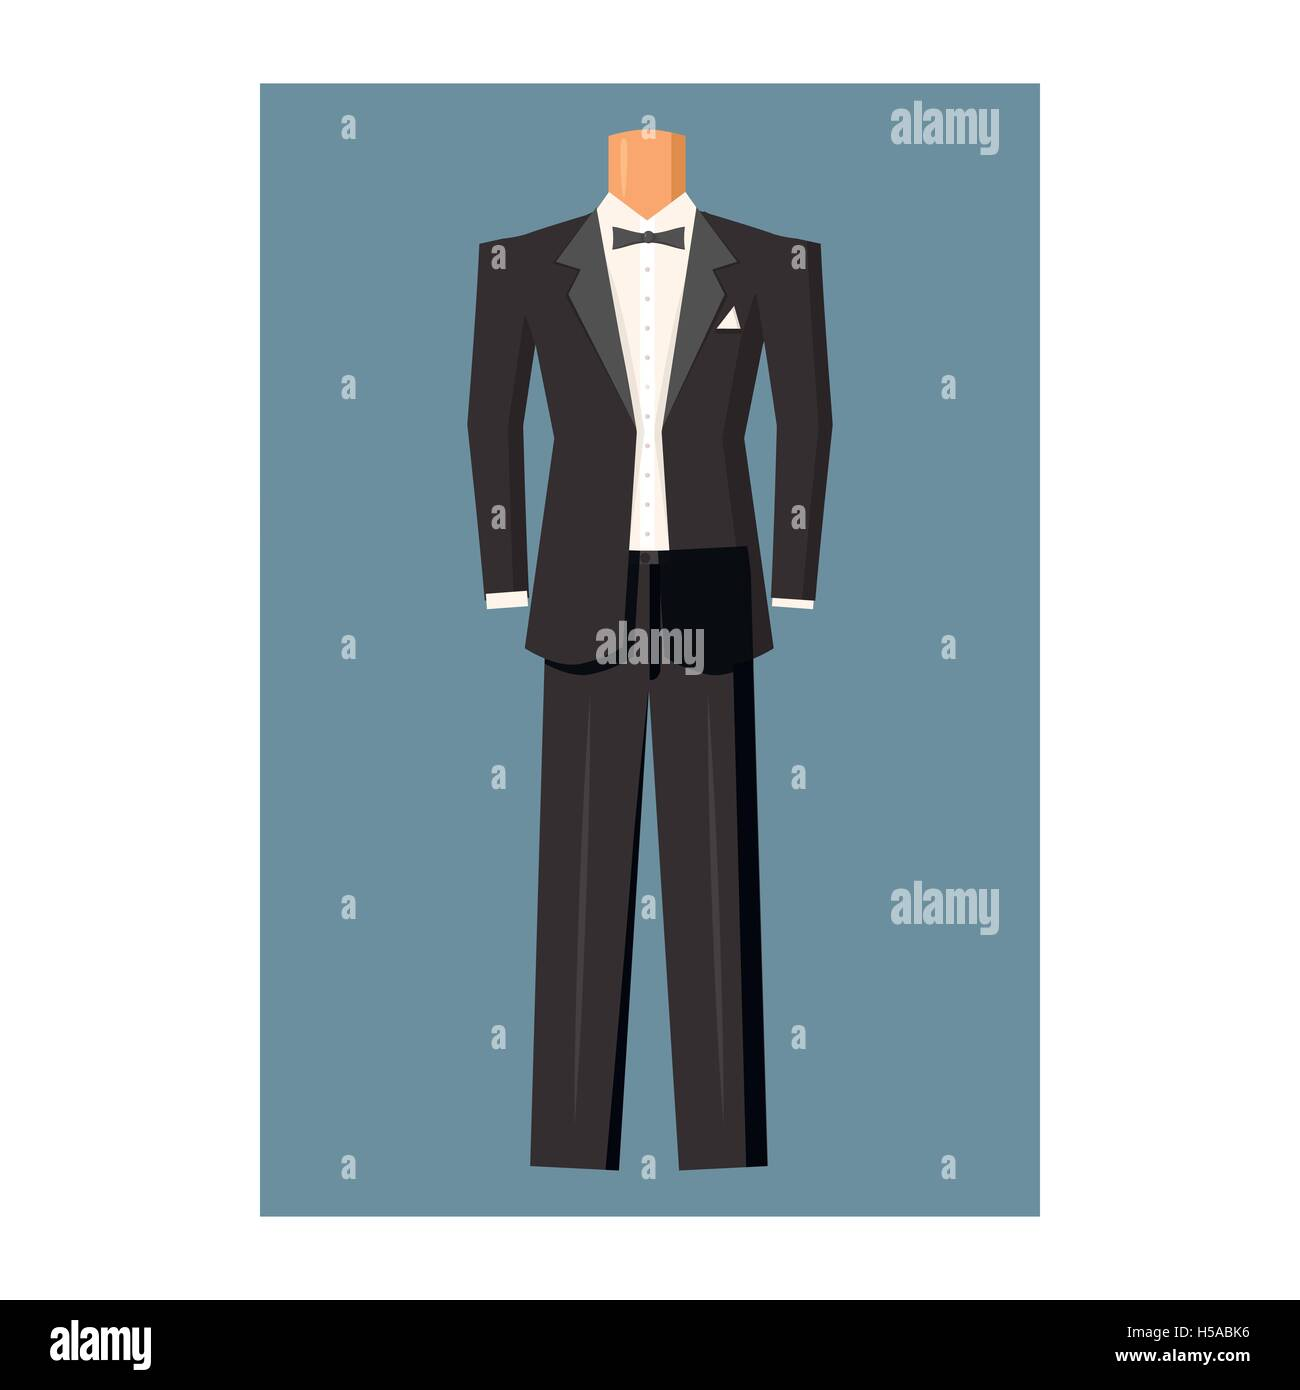 Tuxedo Shirt Stock Vector Images - Alamy